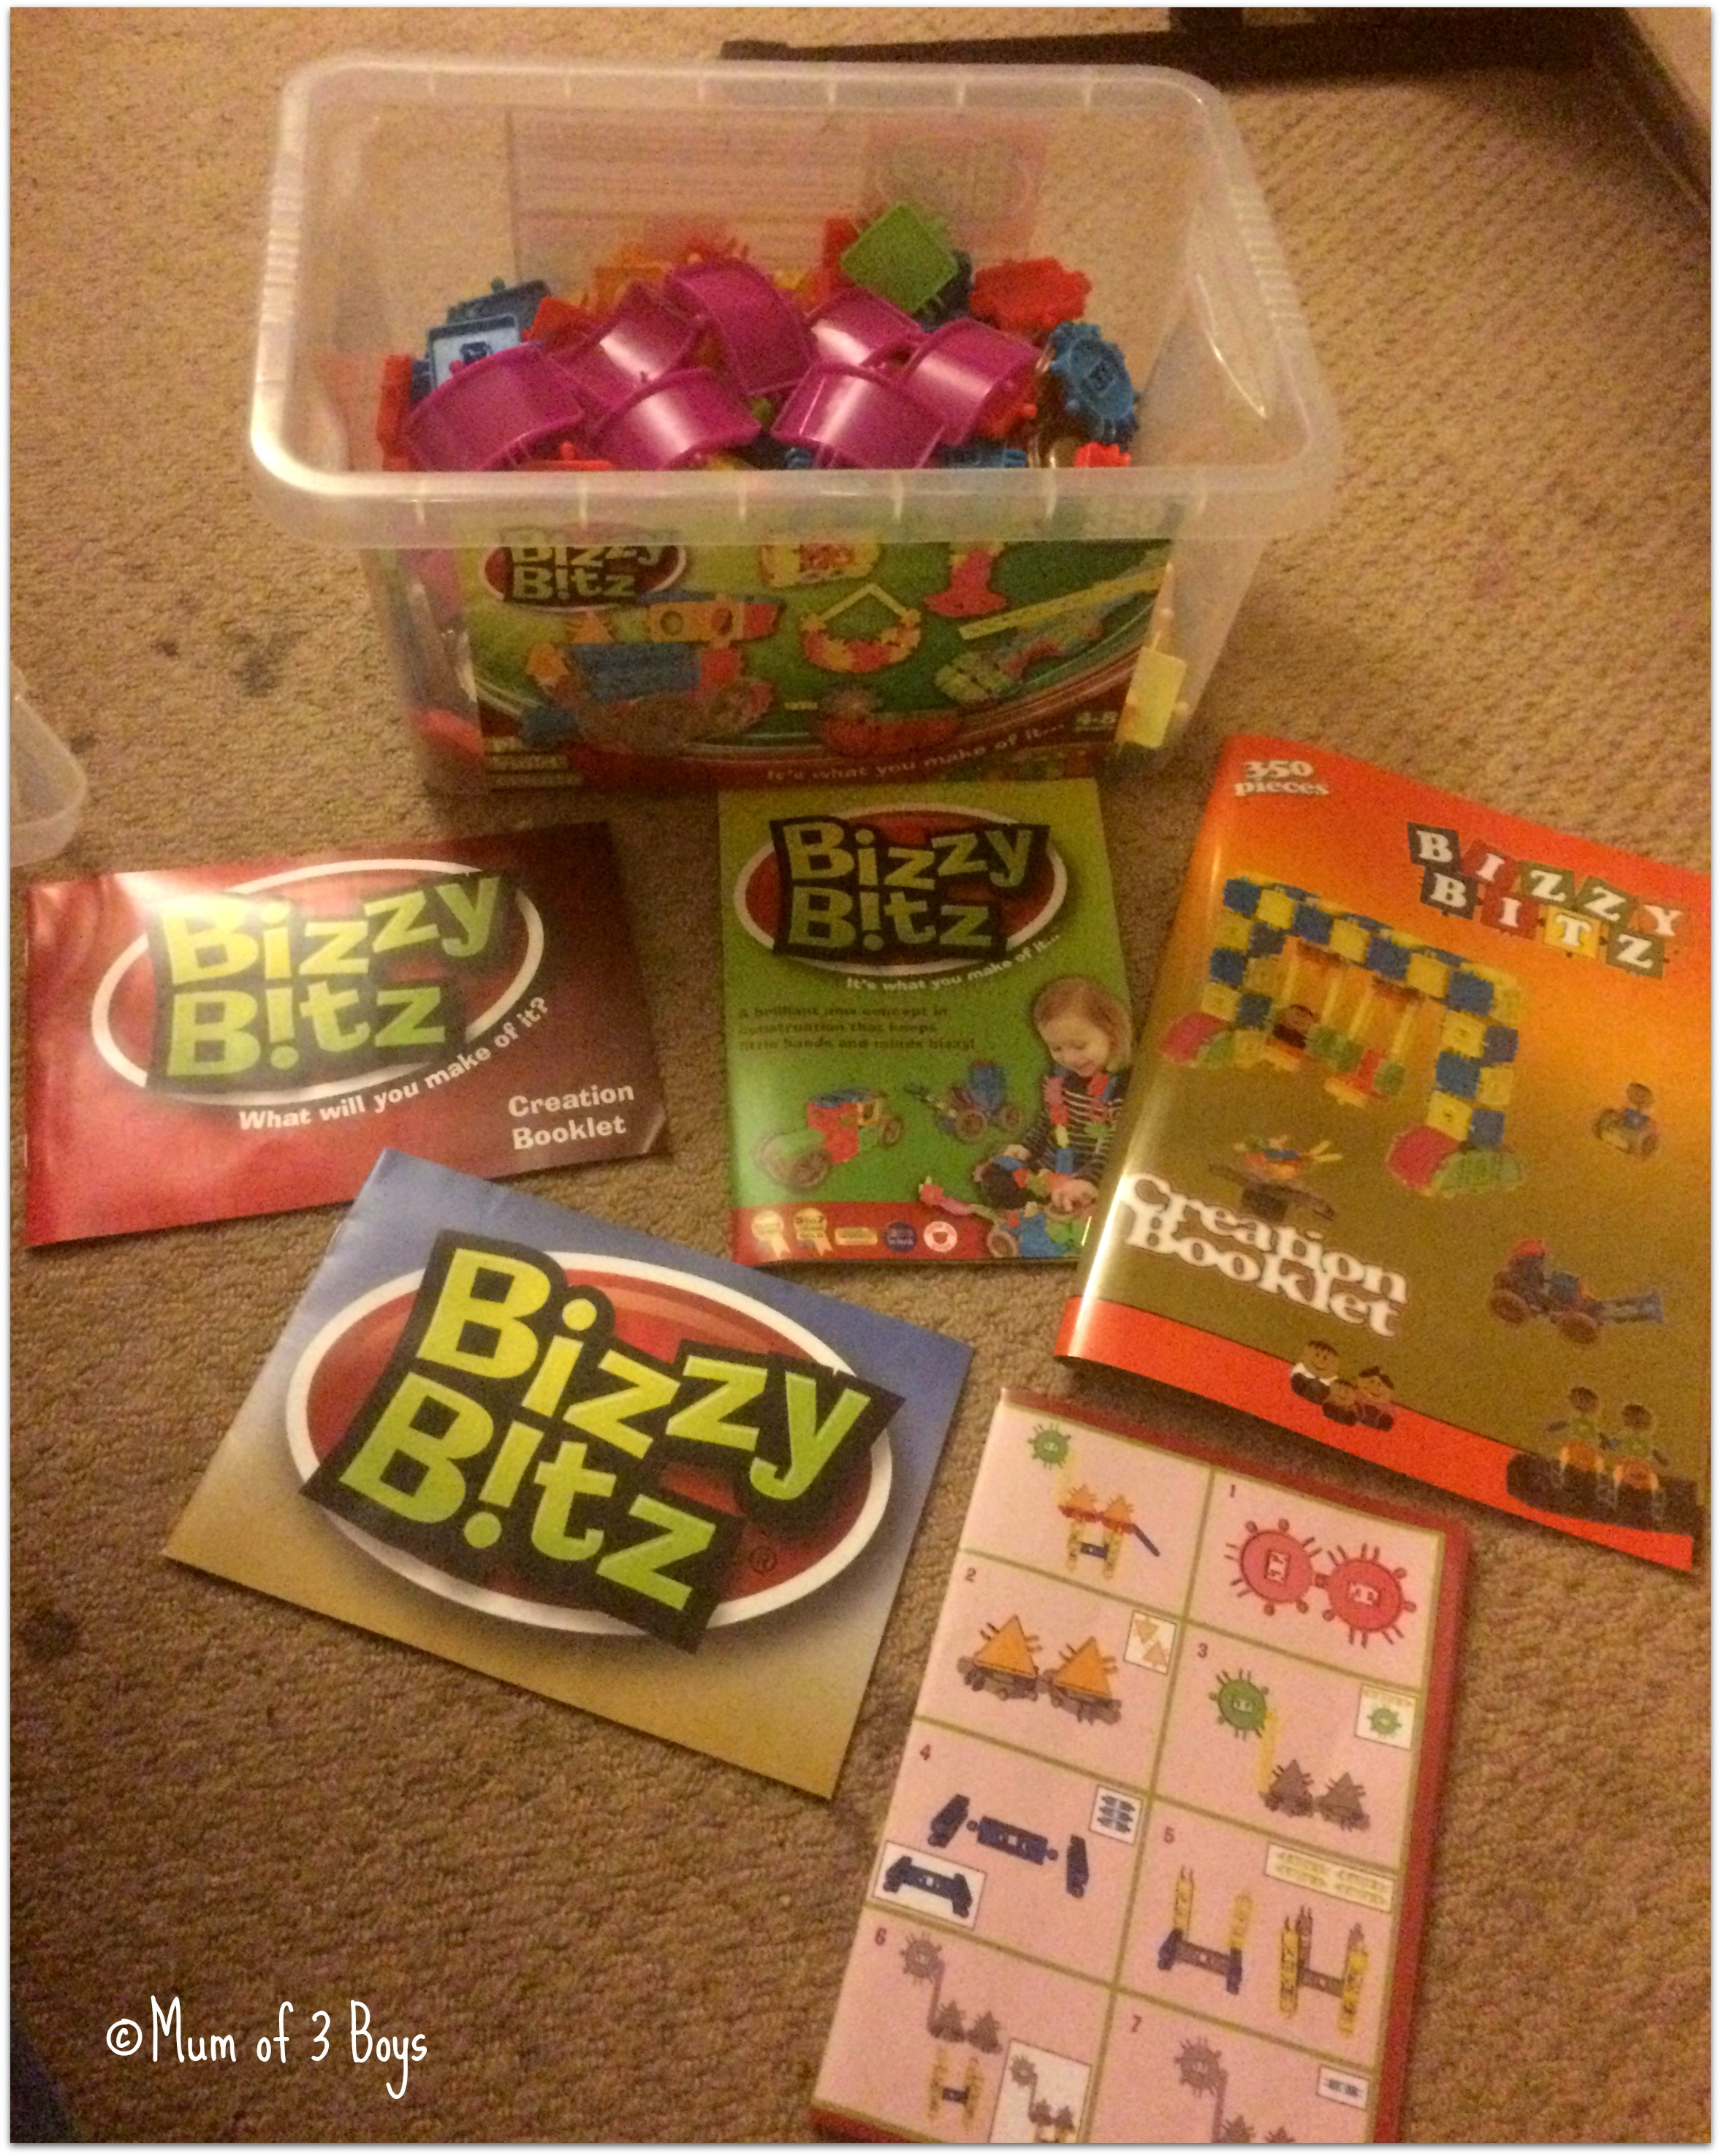 Bizzy Bitz box